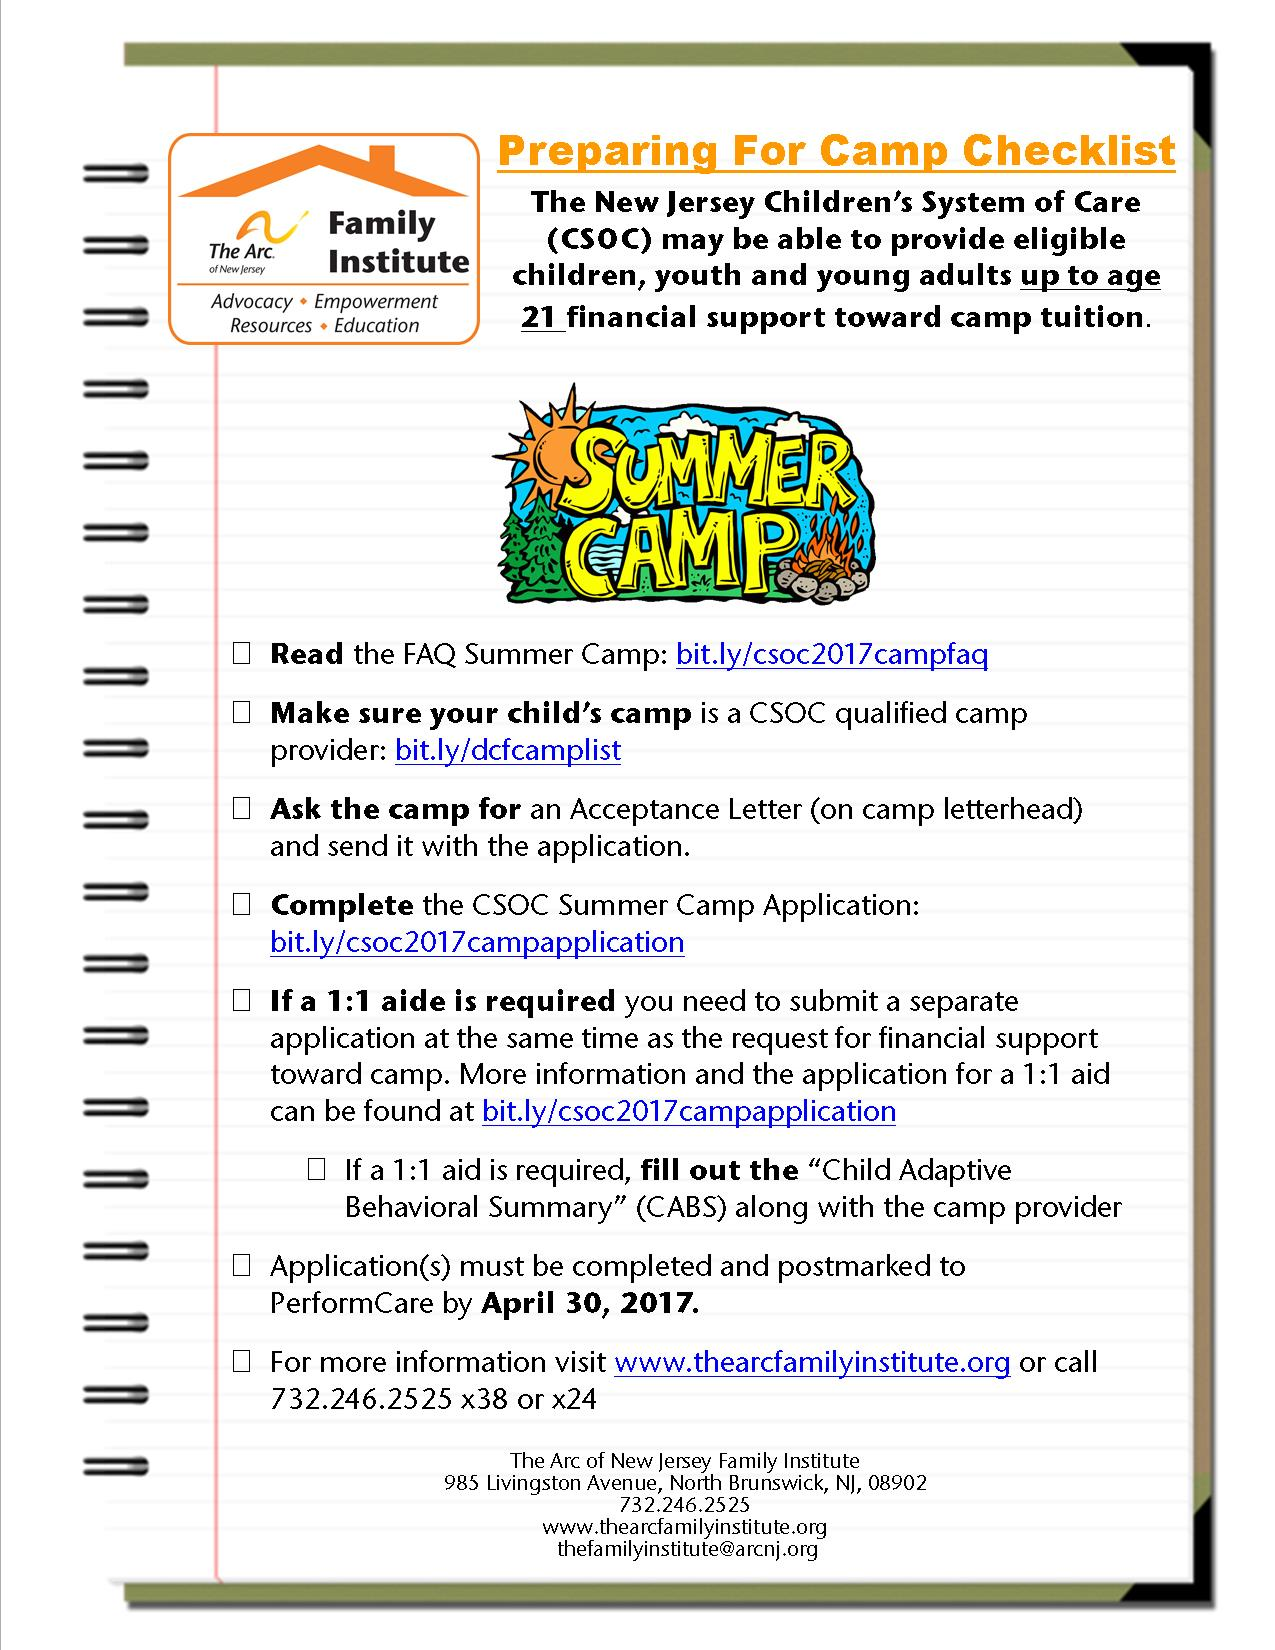 Preparing for CSOC's Summer Camp Application: Checklist